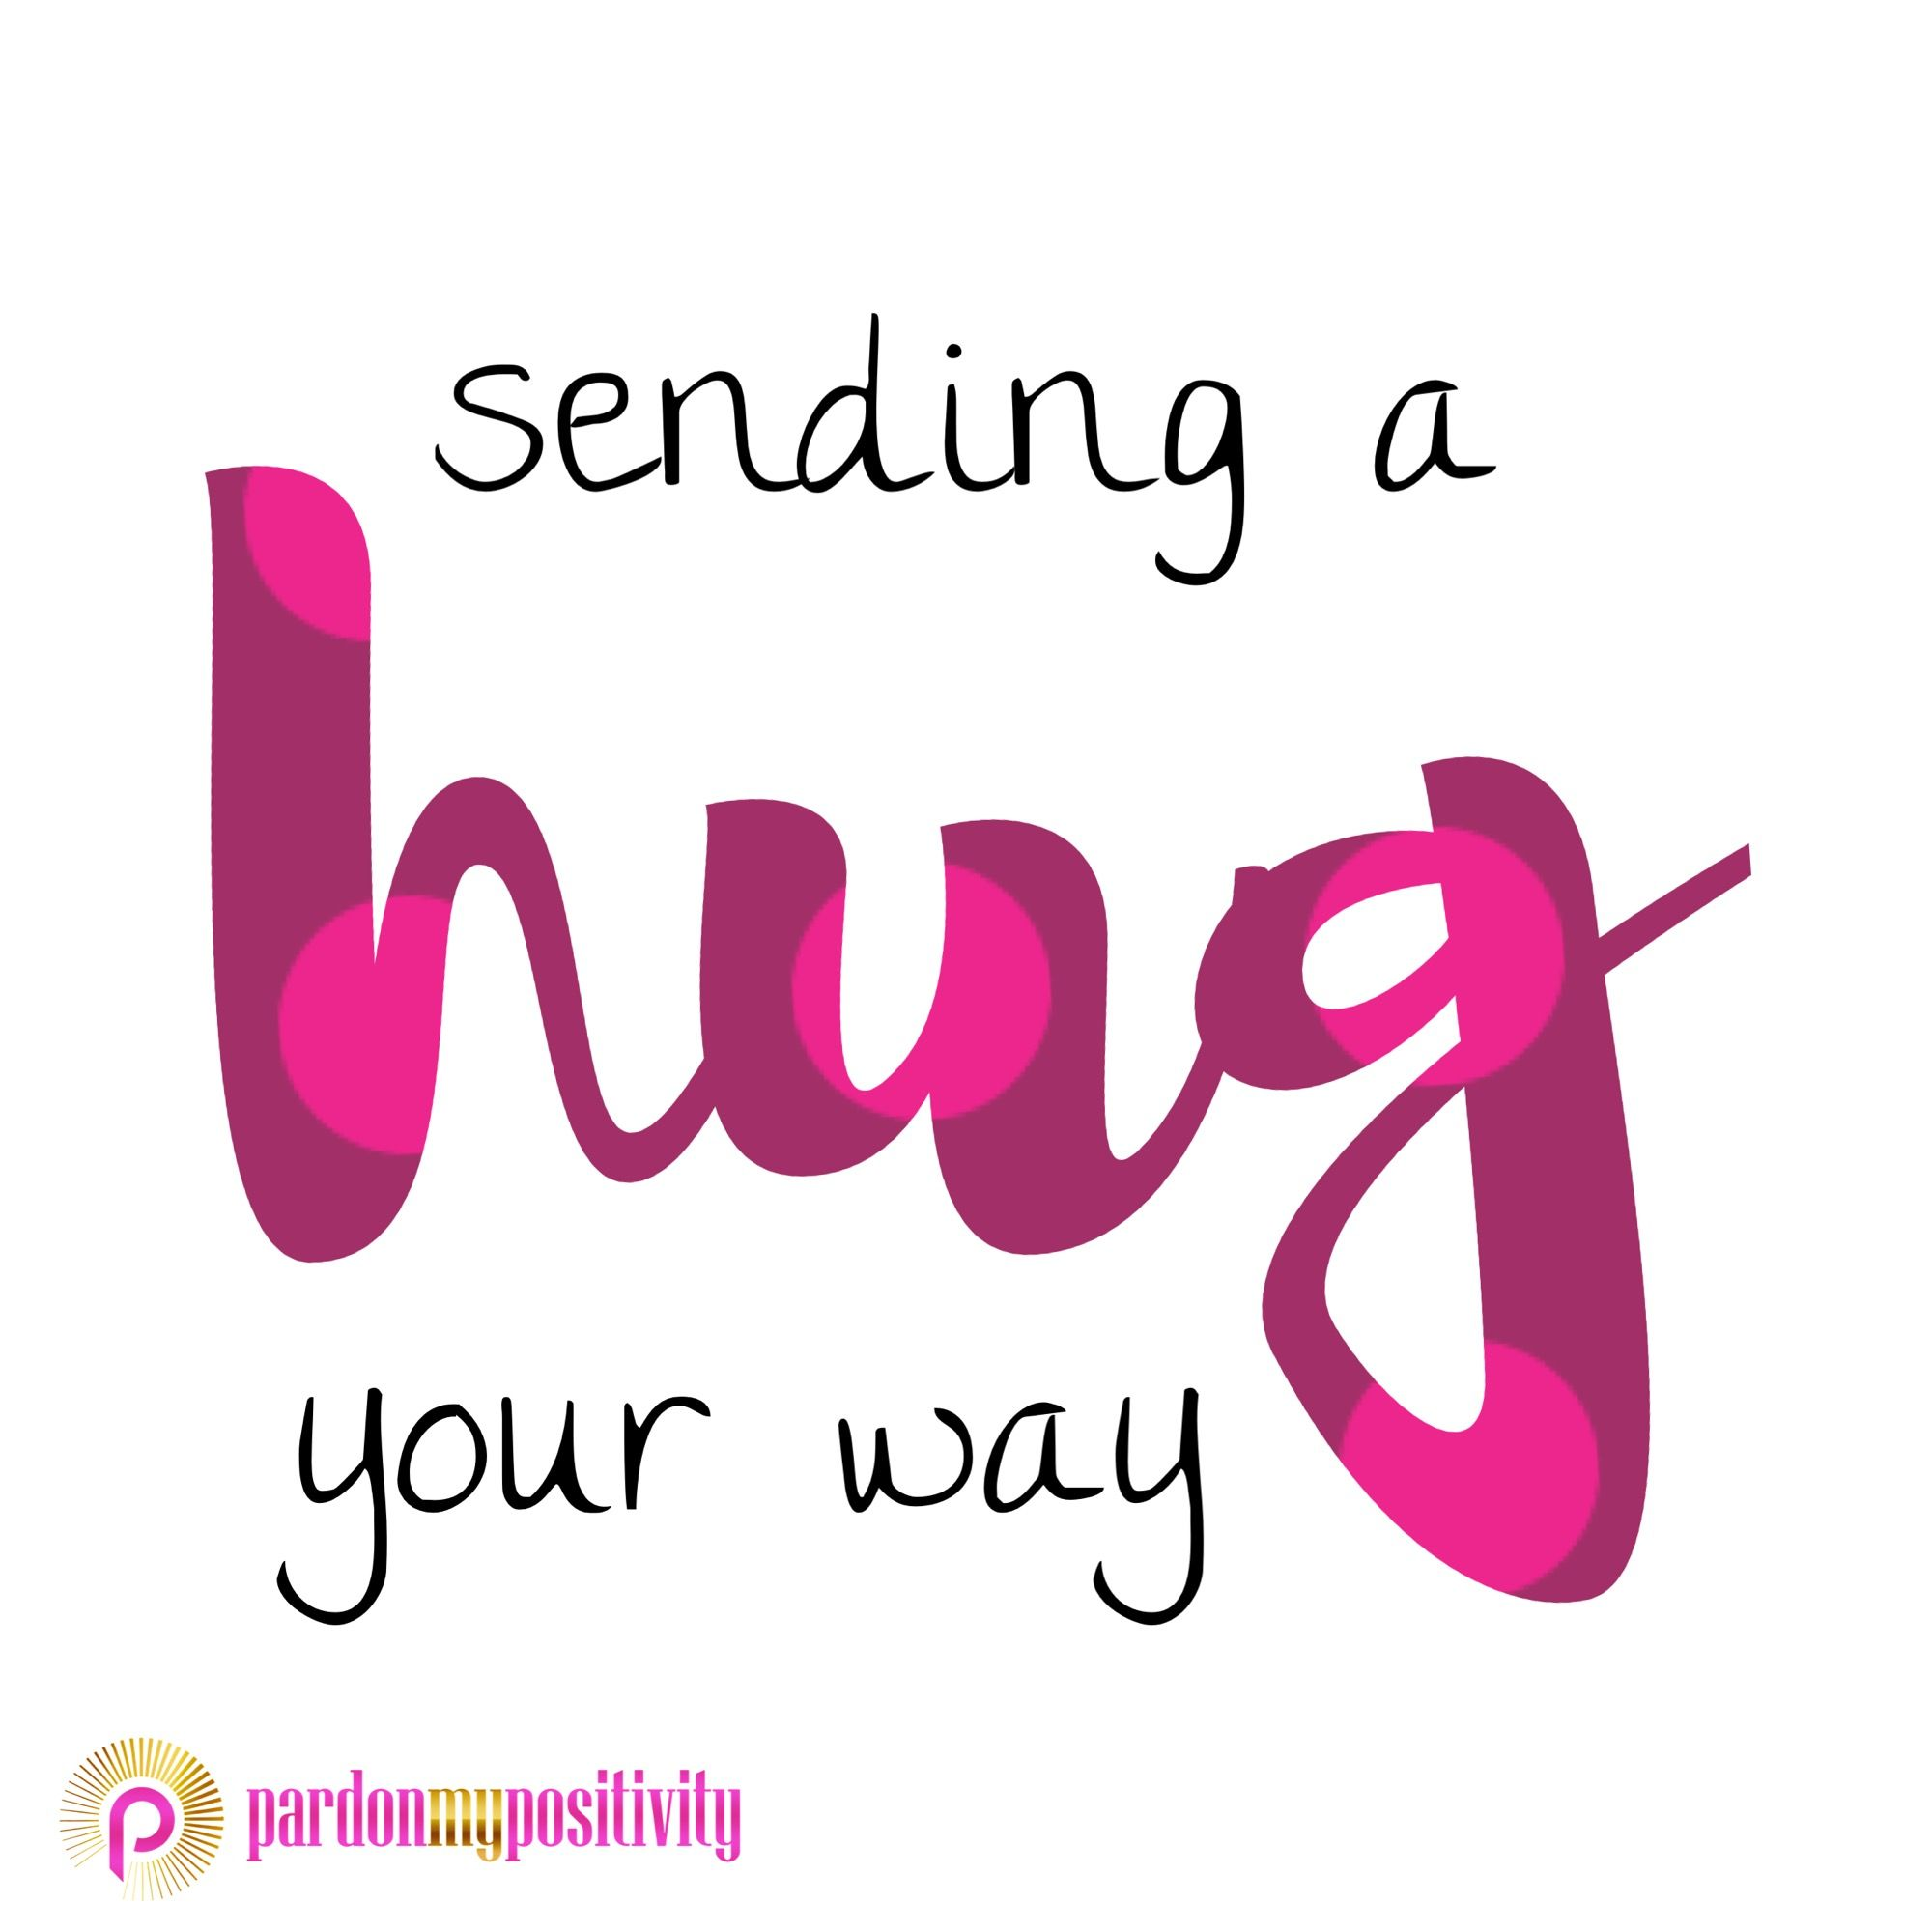 Sending a HUG your way! hugday nationalhuggingday hug